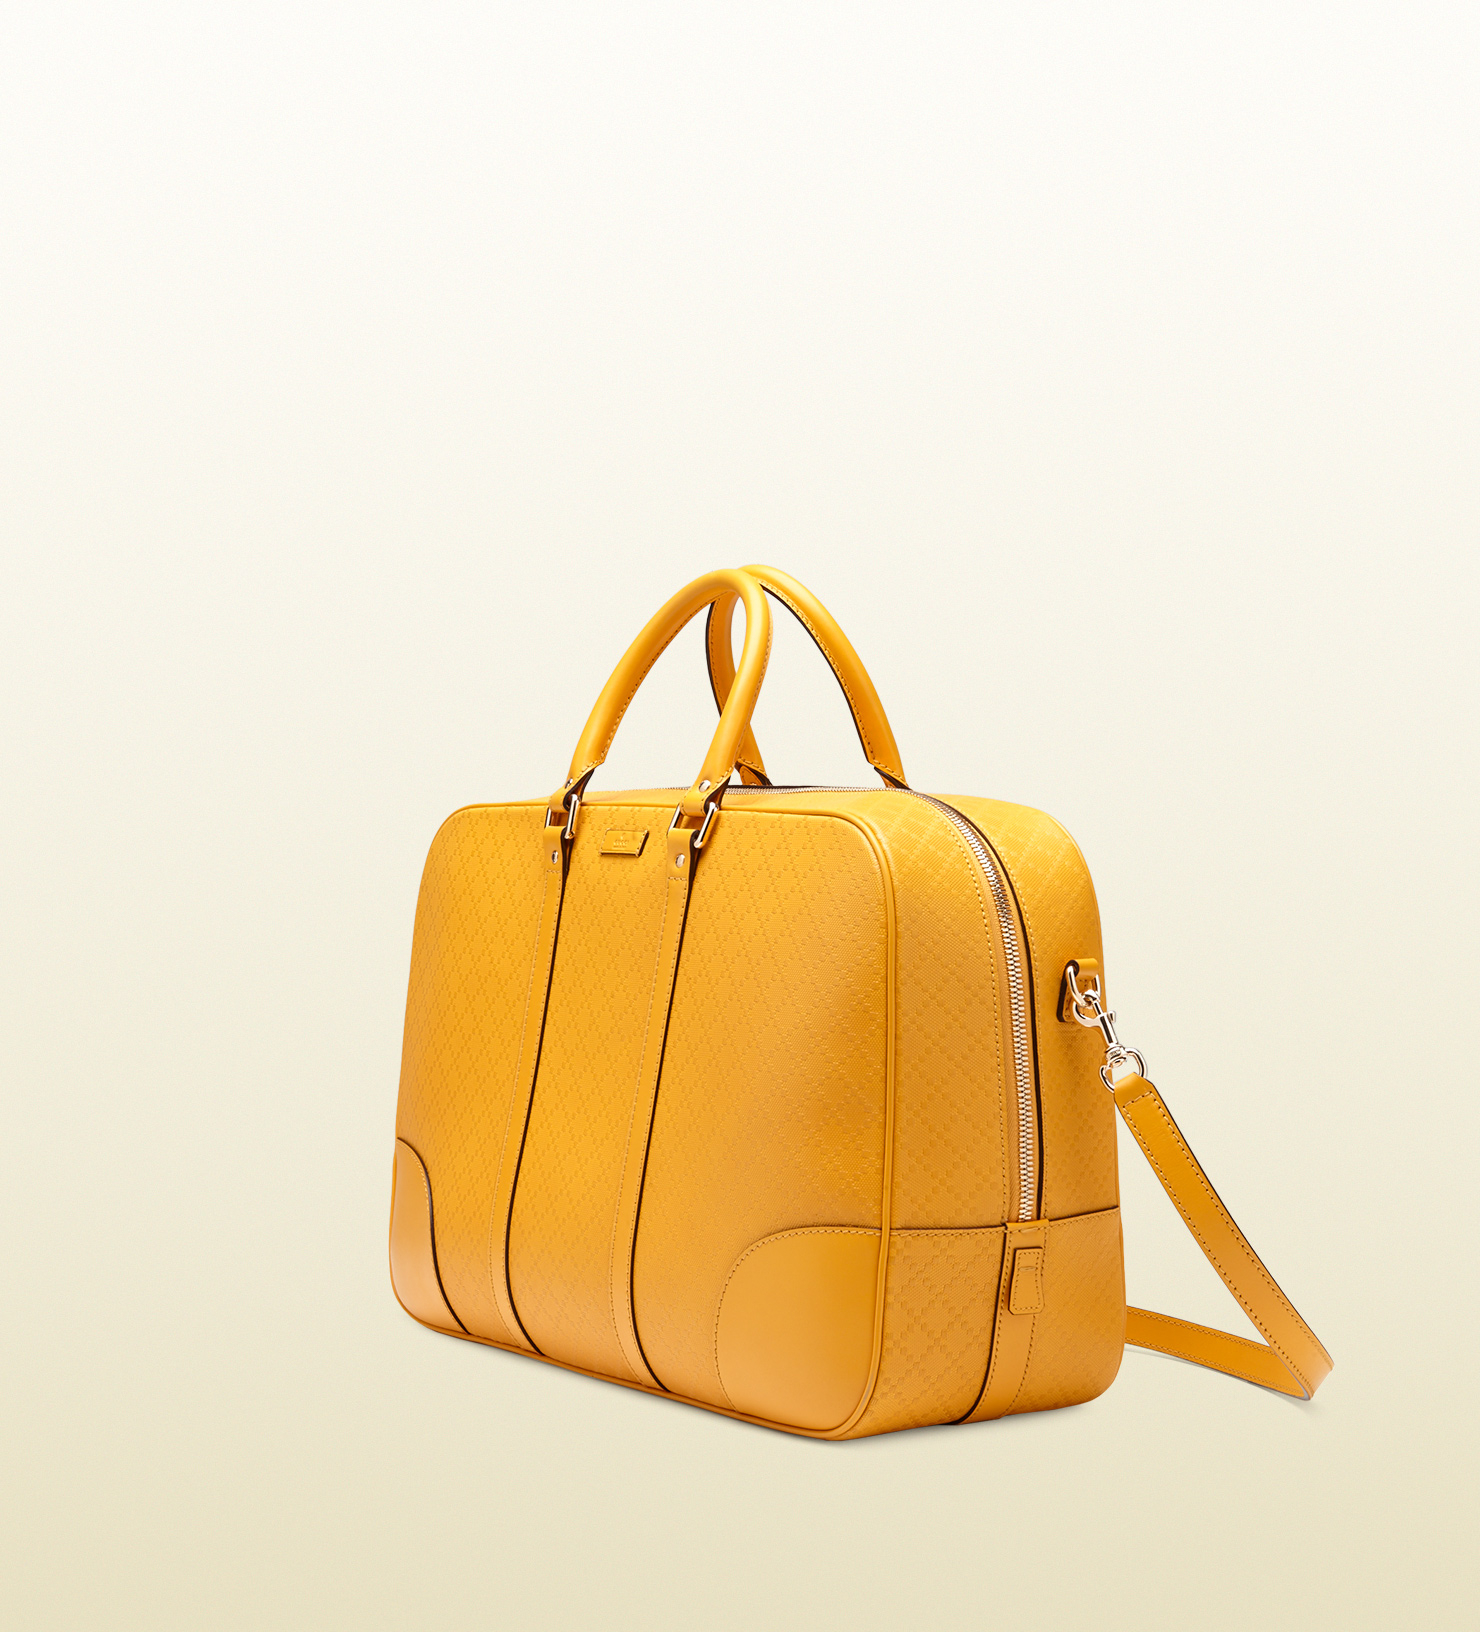 90290e3c52d Lyst - Gucci Bright Diamante Leather Duffle Bag in Yellow